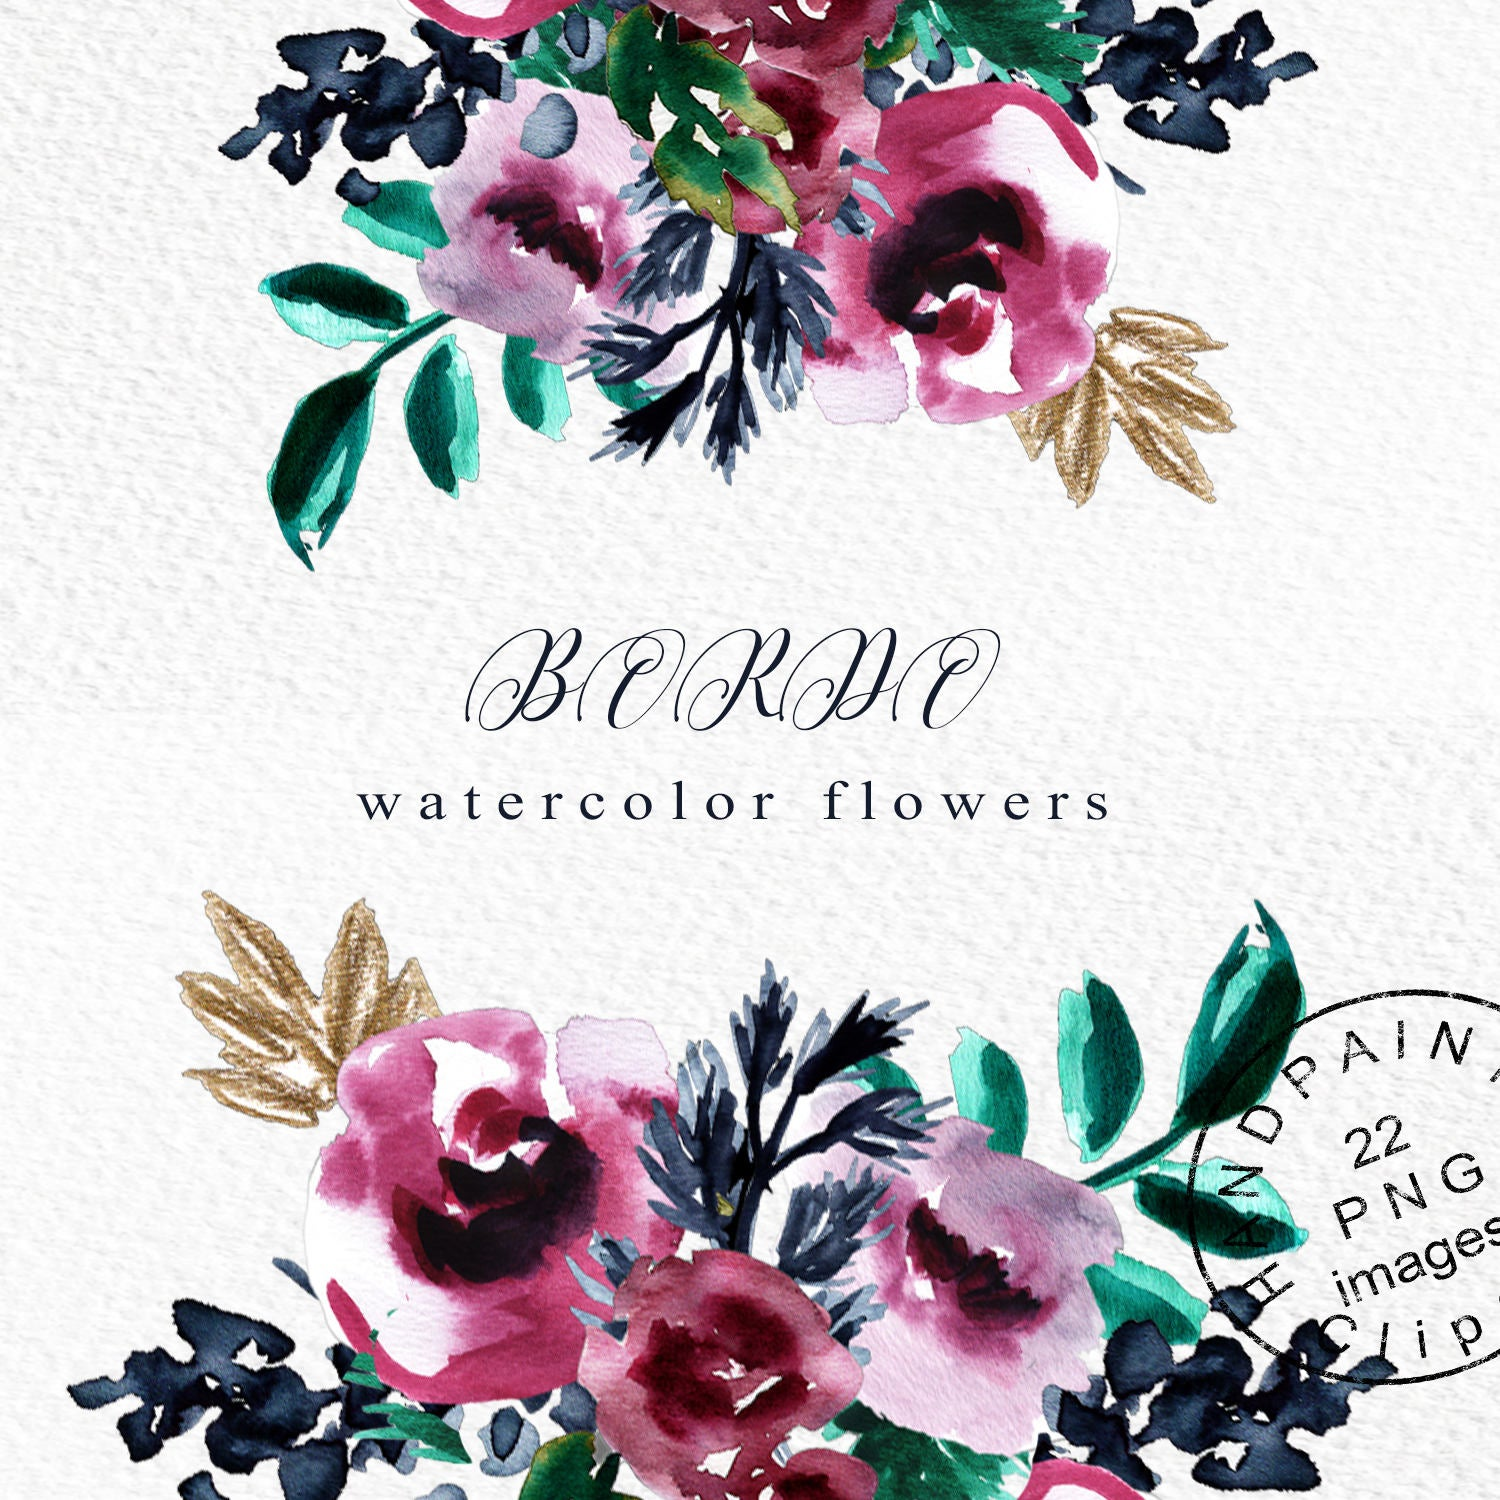 Floral Png, Burgundy Flowers, Floral Watercolor Clipart, Watercolor Flower  Clipart, Watercolor Flowers Png, Burgundy Floral Clipart.